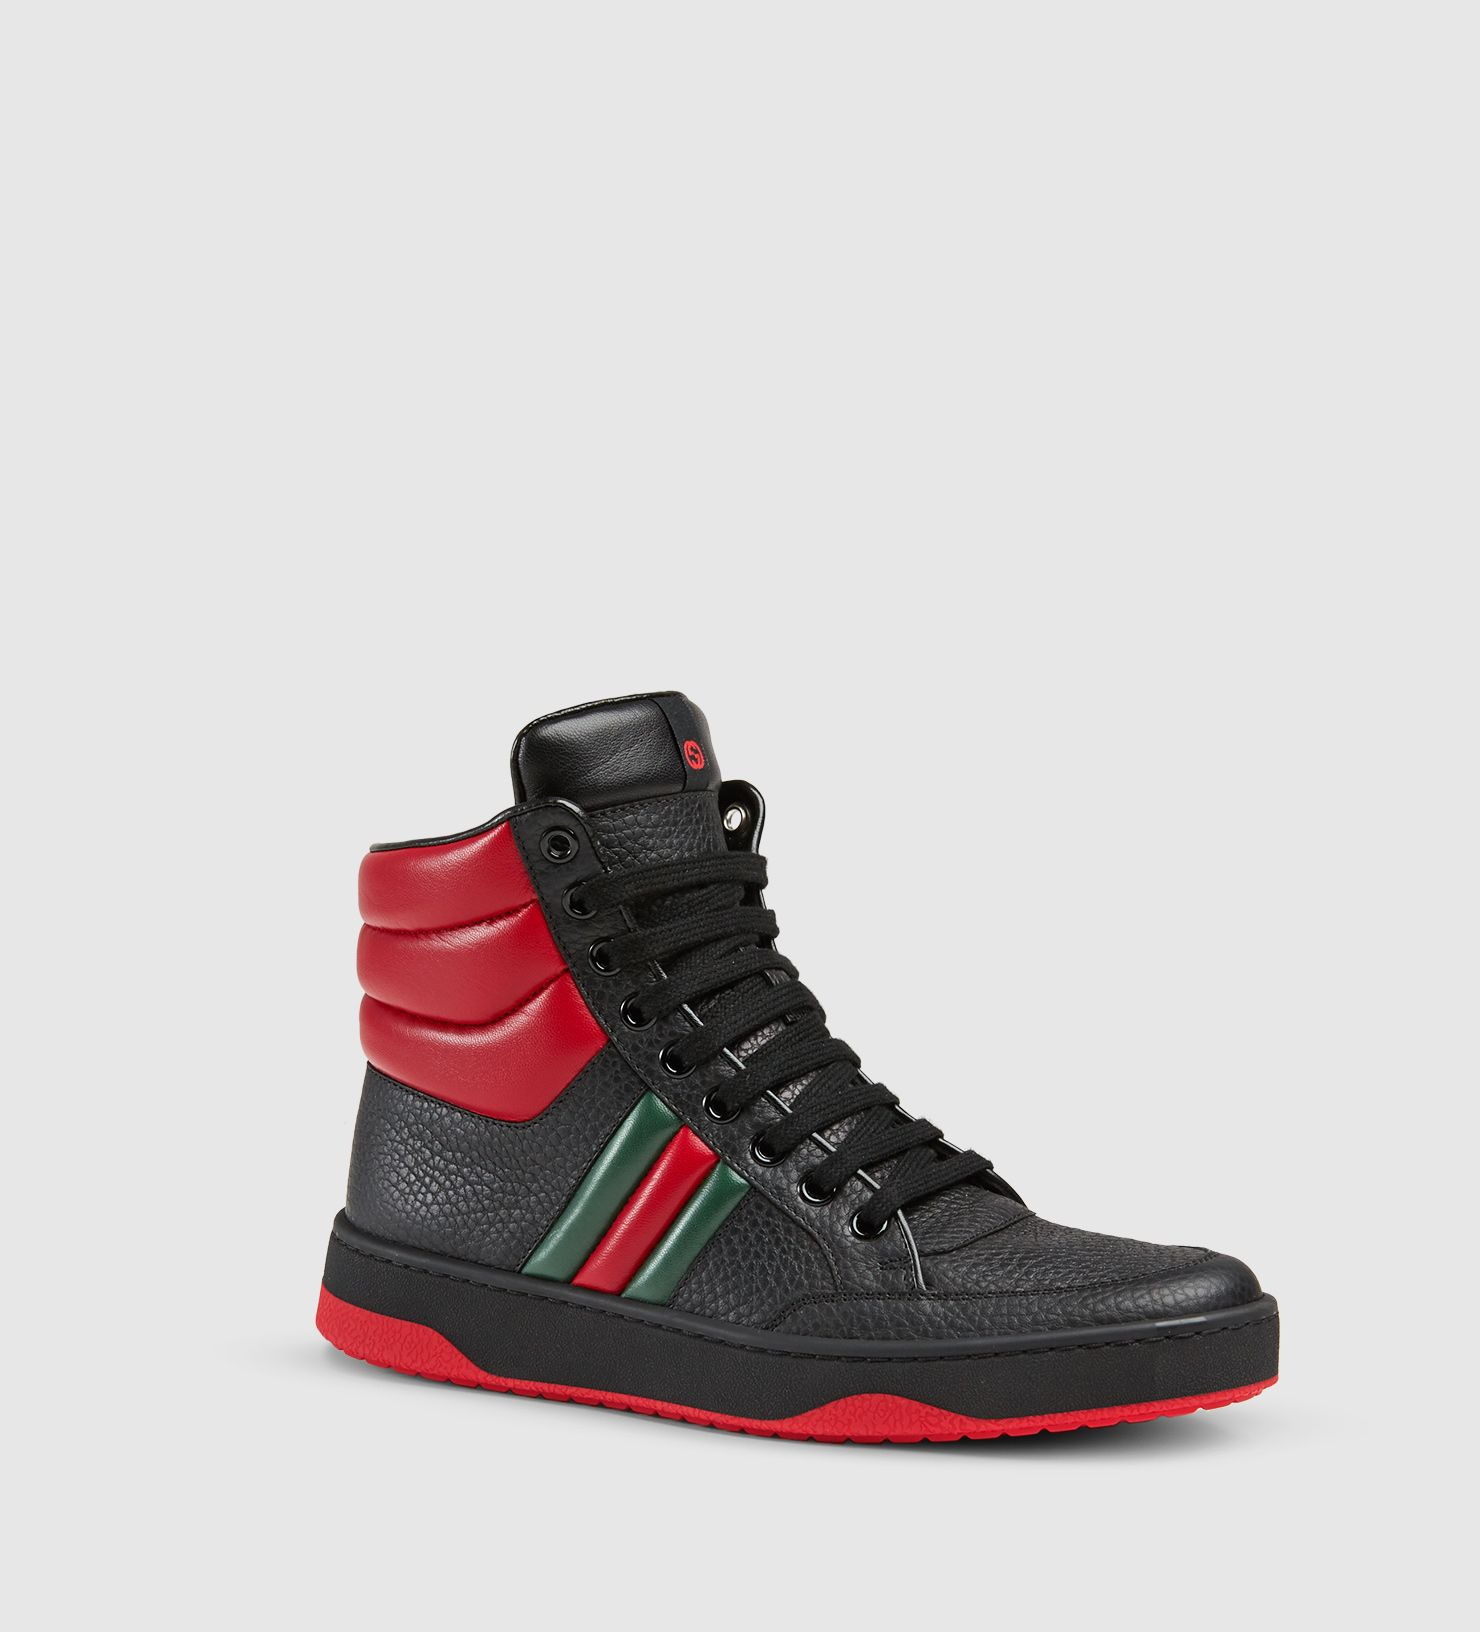 88d32523b59 Gucci Contrast Padded Leather High-Top Sneaker. Black leather with red  padded leather detail. Signature padded leather web detail. Made in Italy.